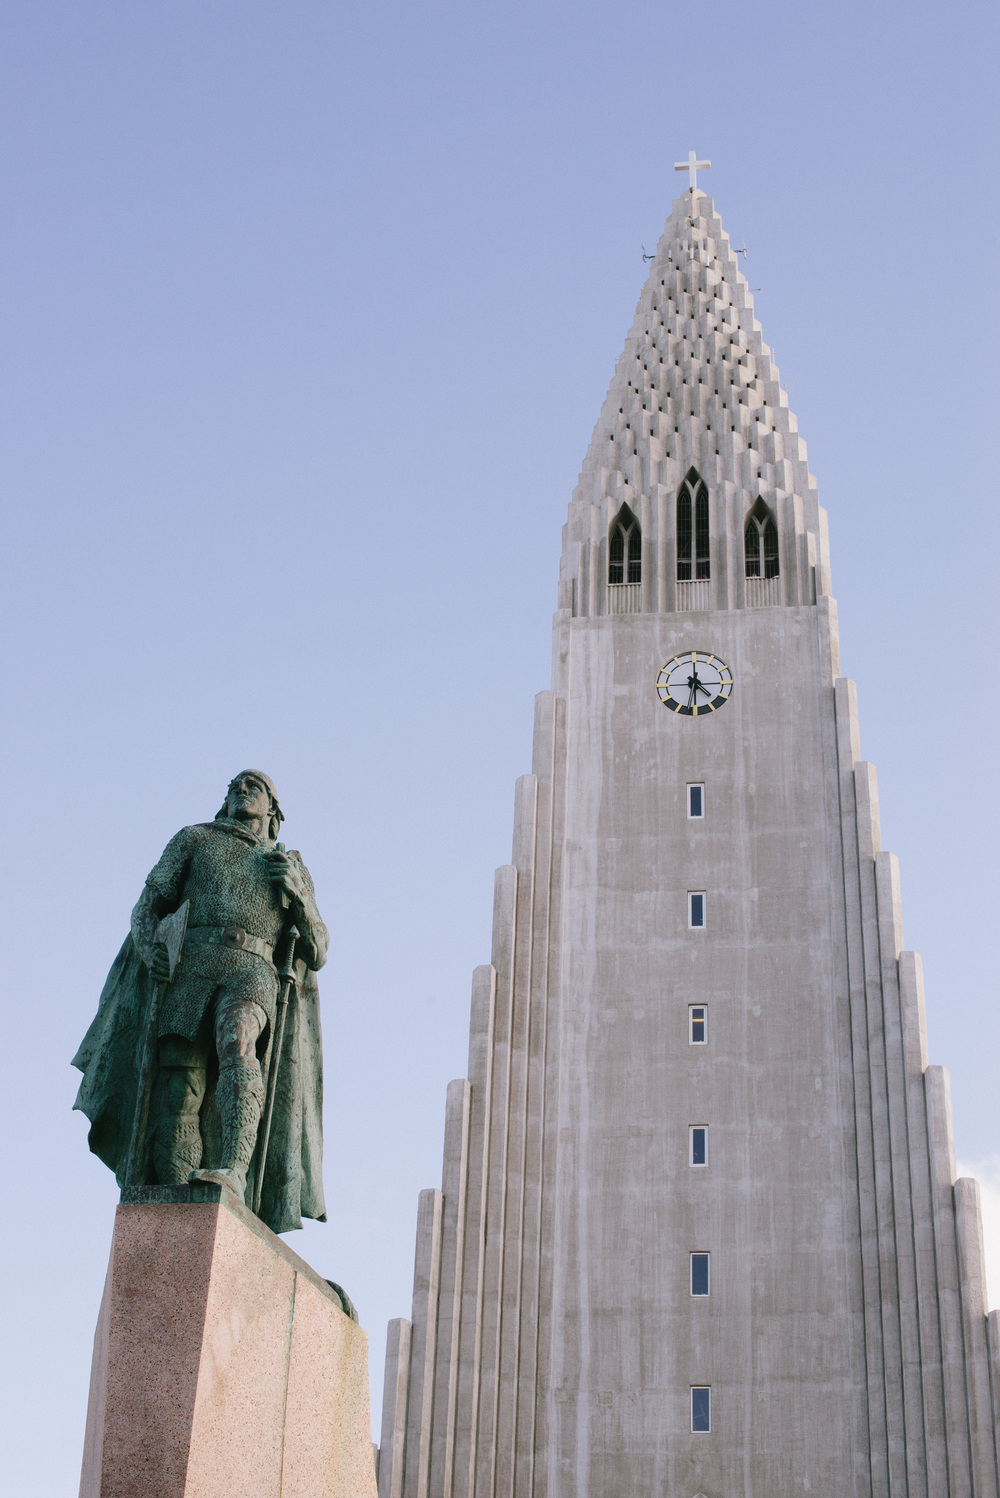 Evening walk about downtown Reykjavik and Hallgrimskirkja.